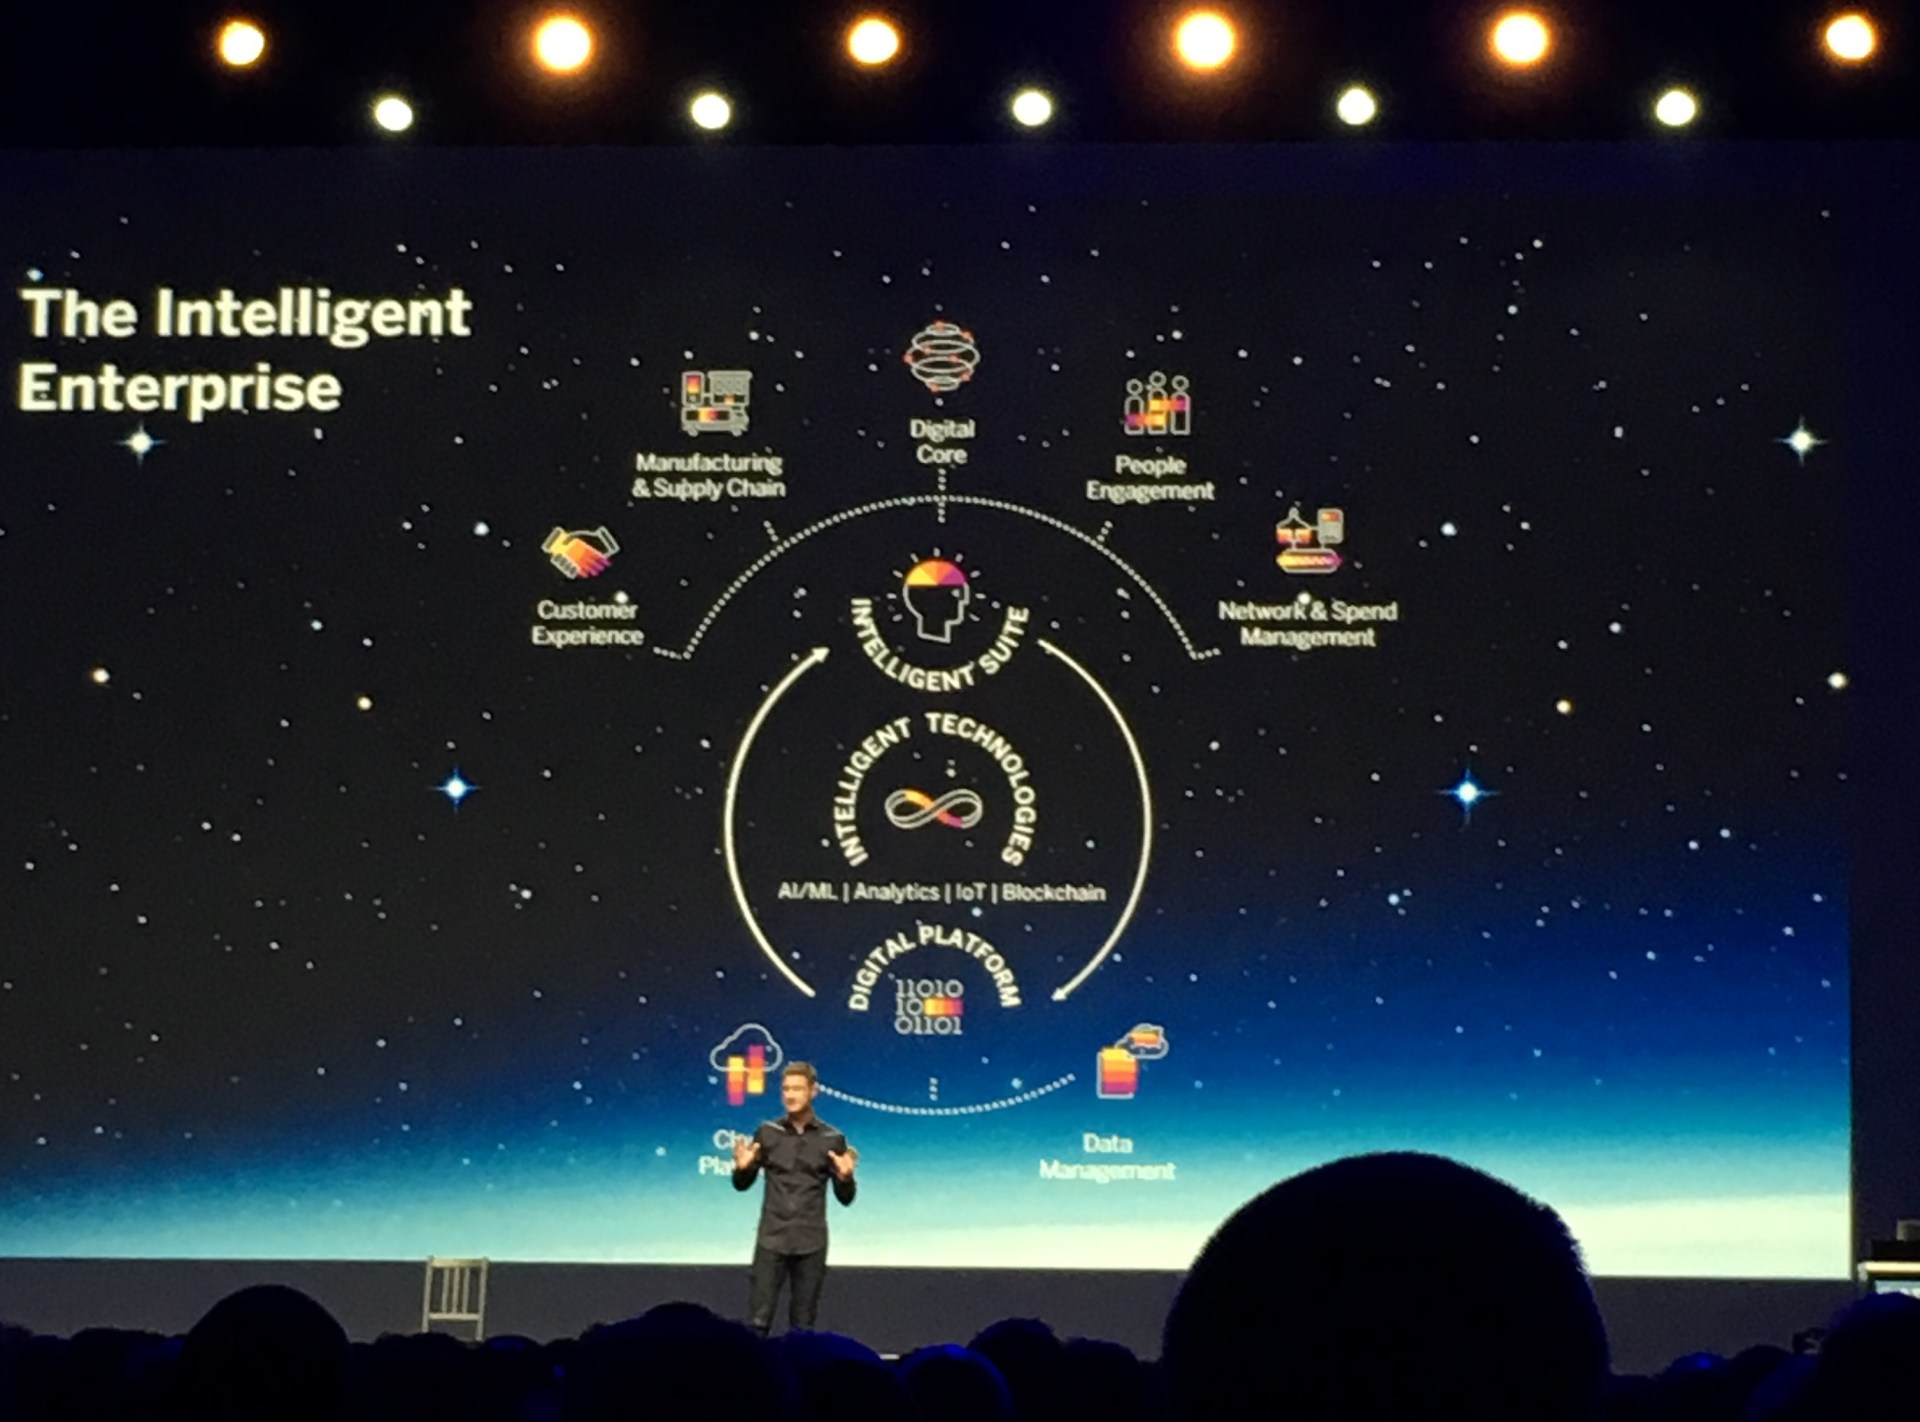 Bjorn Goerke presents the Intelligent Enterprise